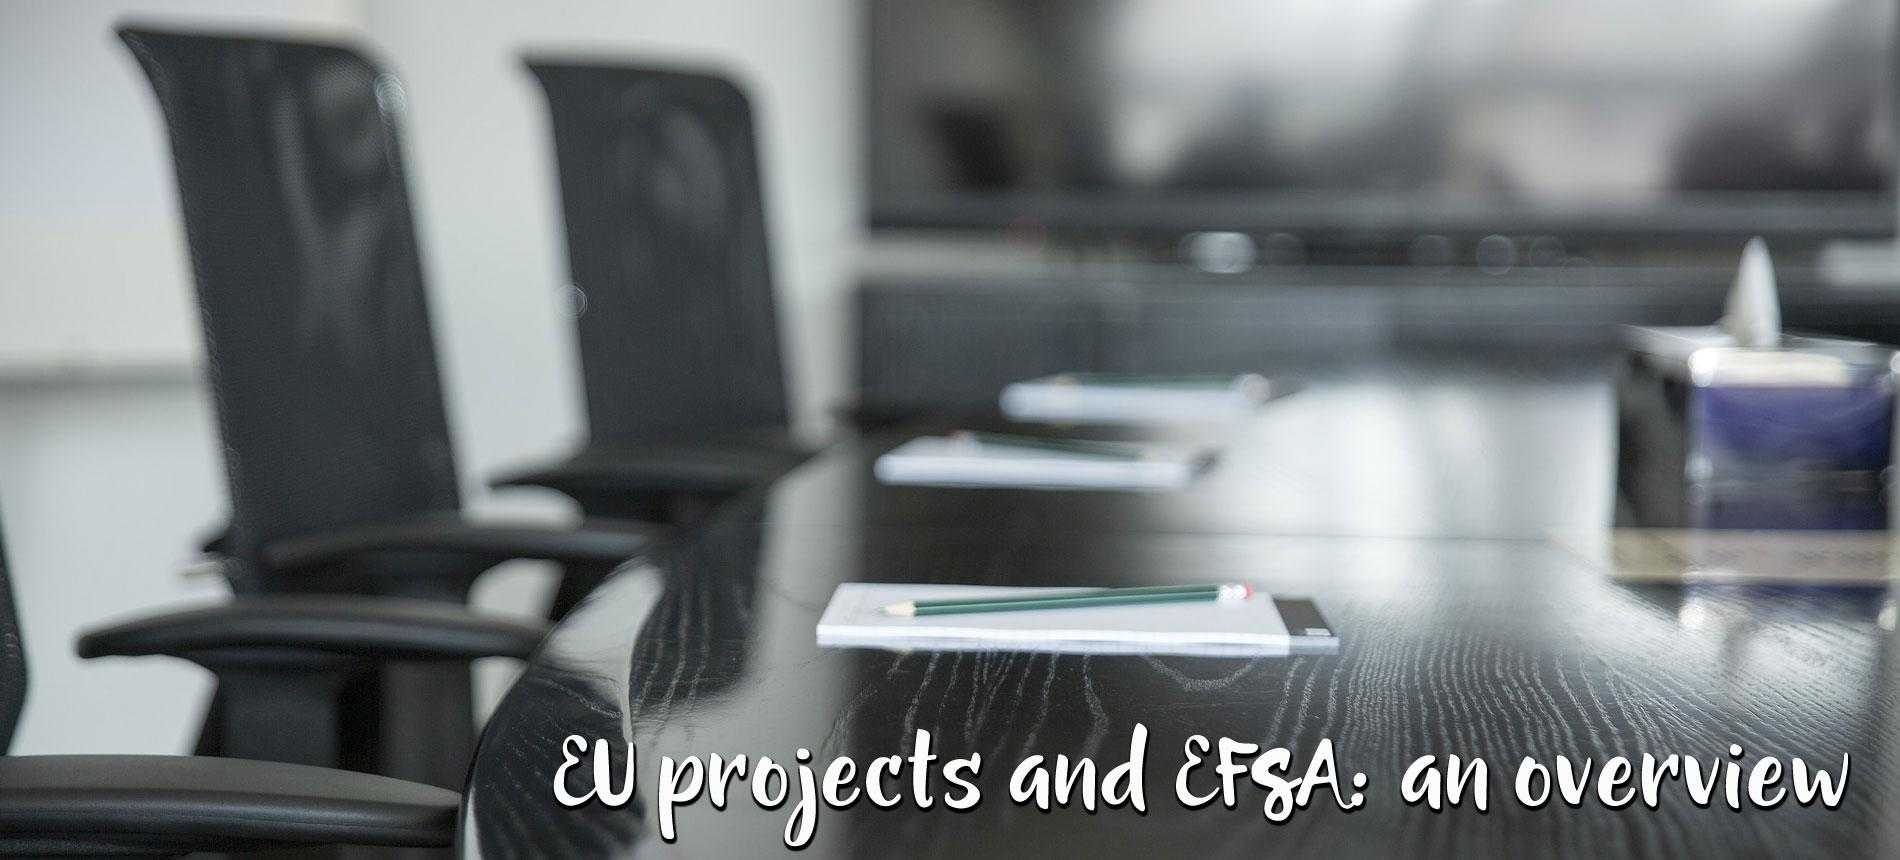 EU PROJECTS AND EFSA: AN OVERVIEW